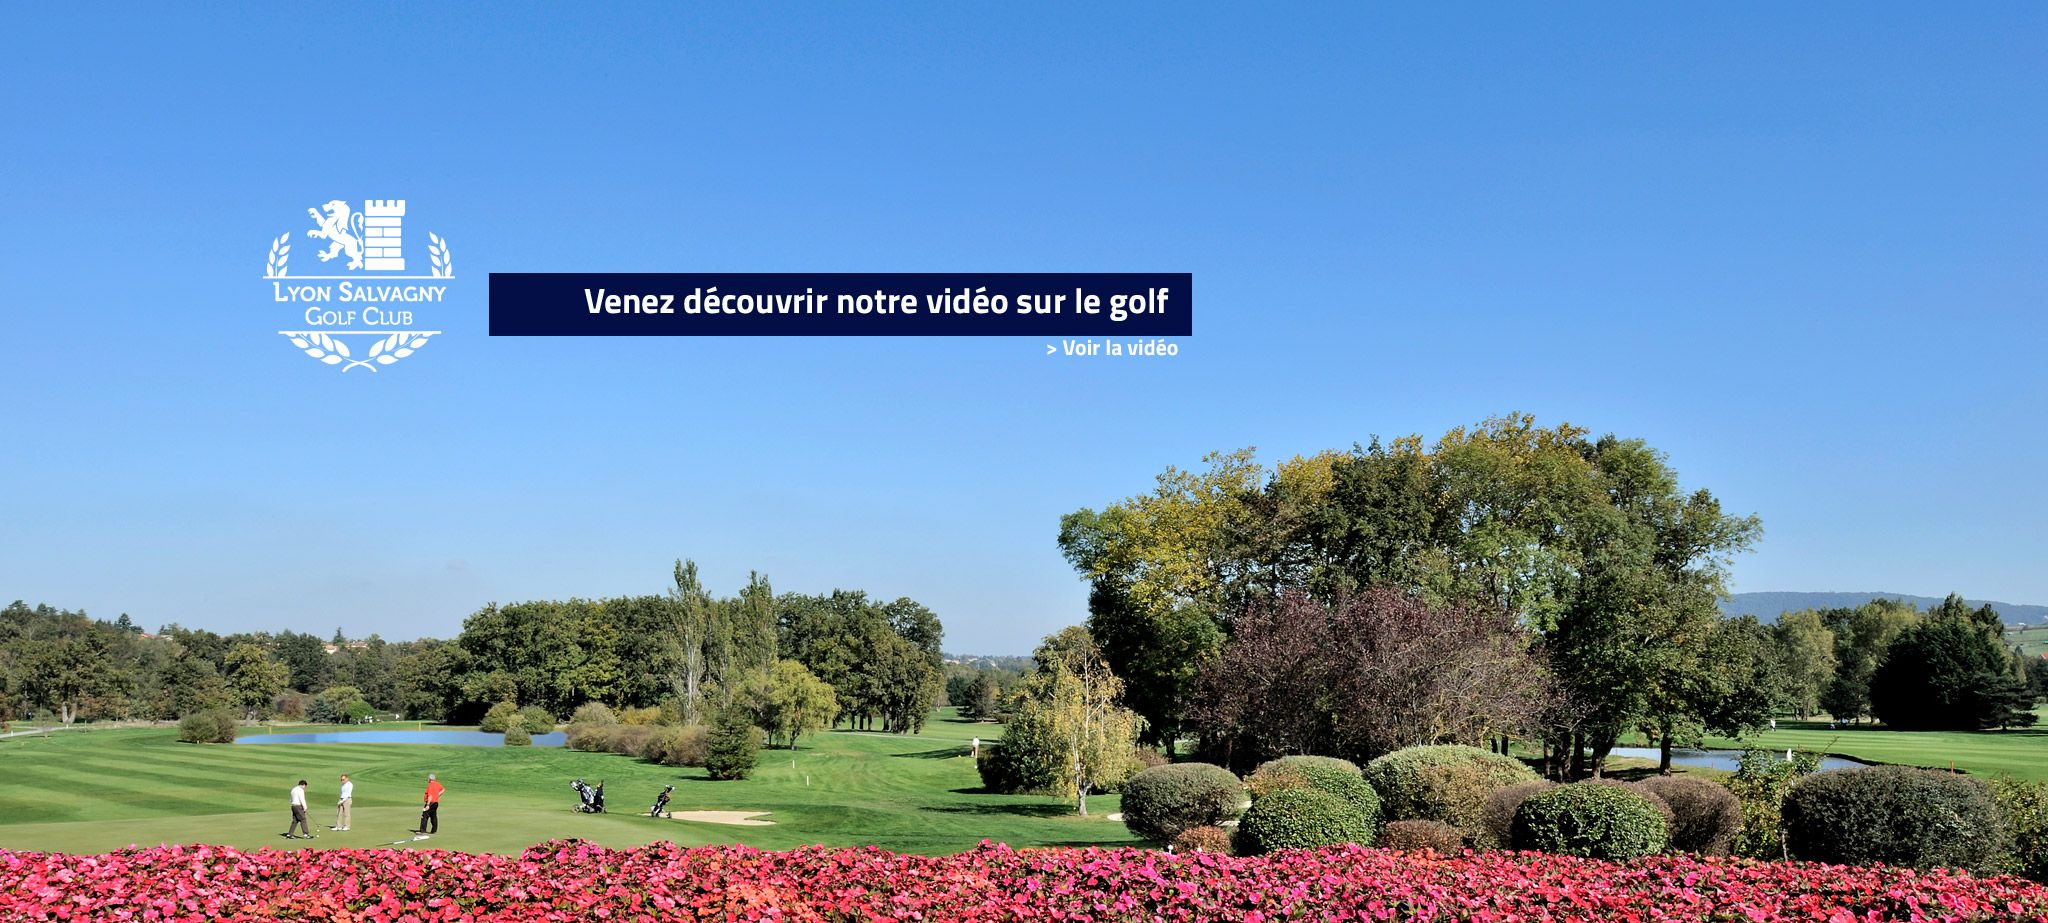 Golf de la tour de salvagny